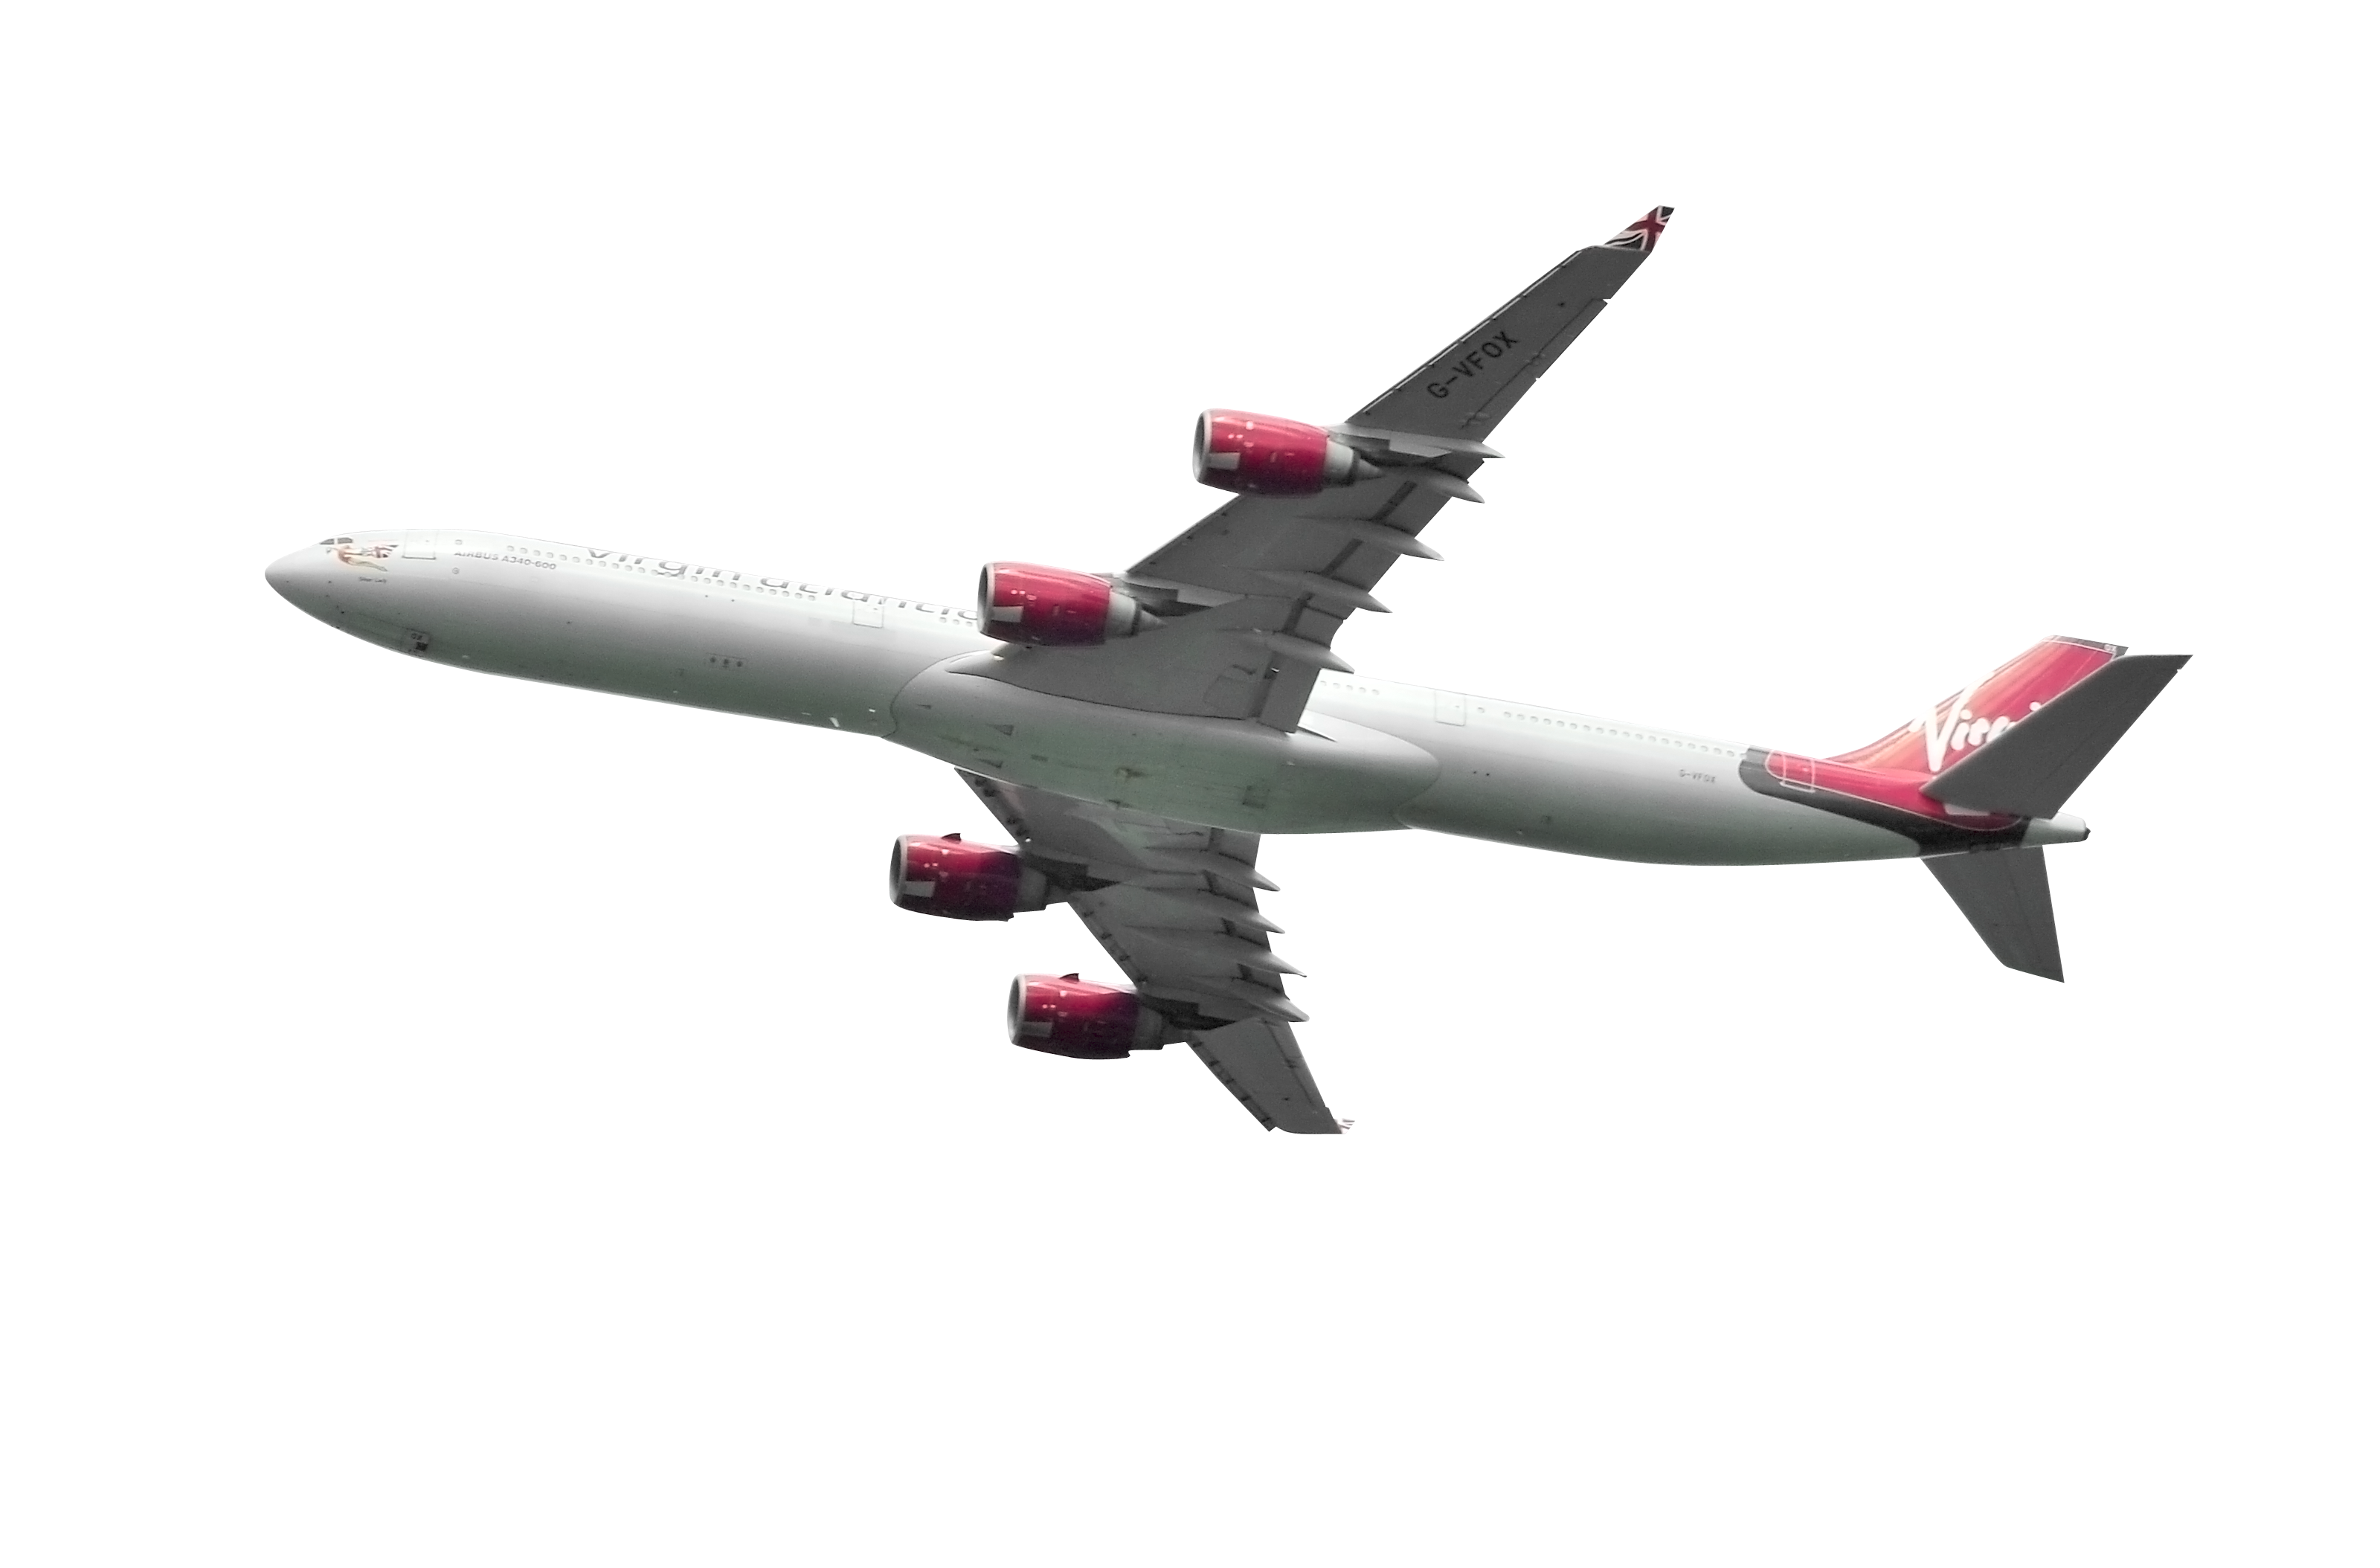 Planes PNG images free download, plane PNG photo.